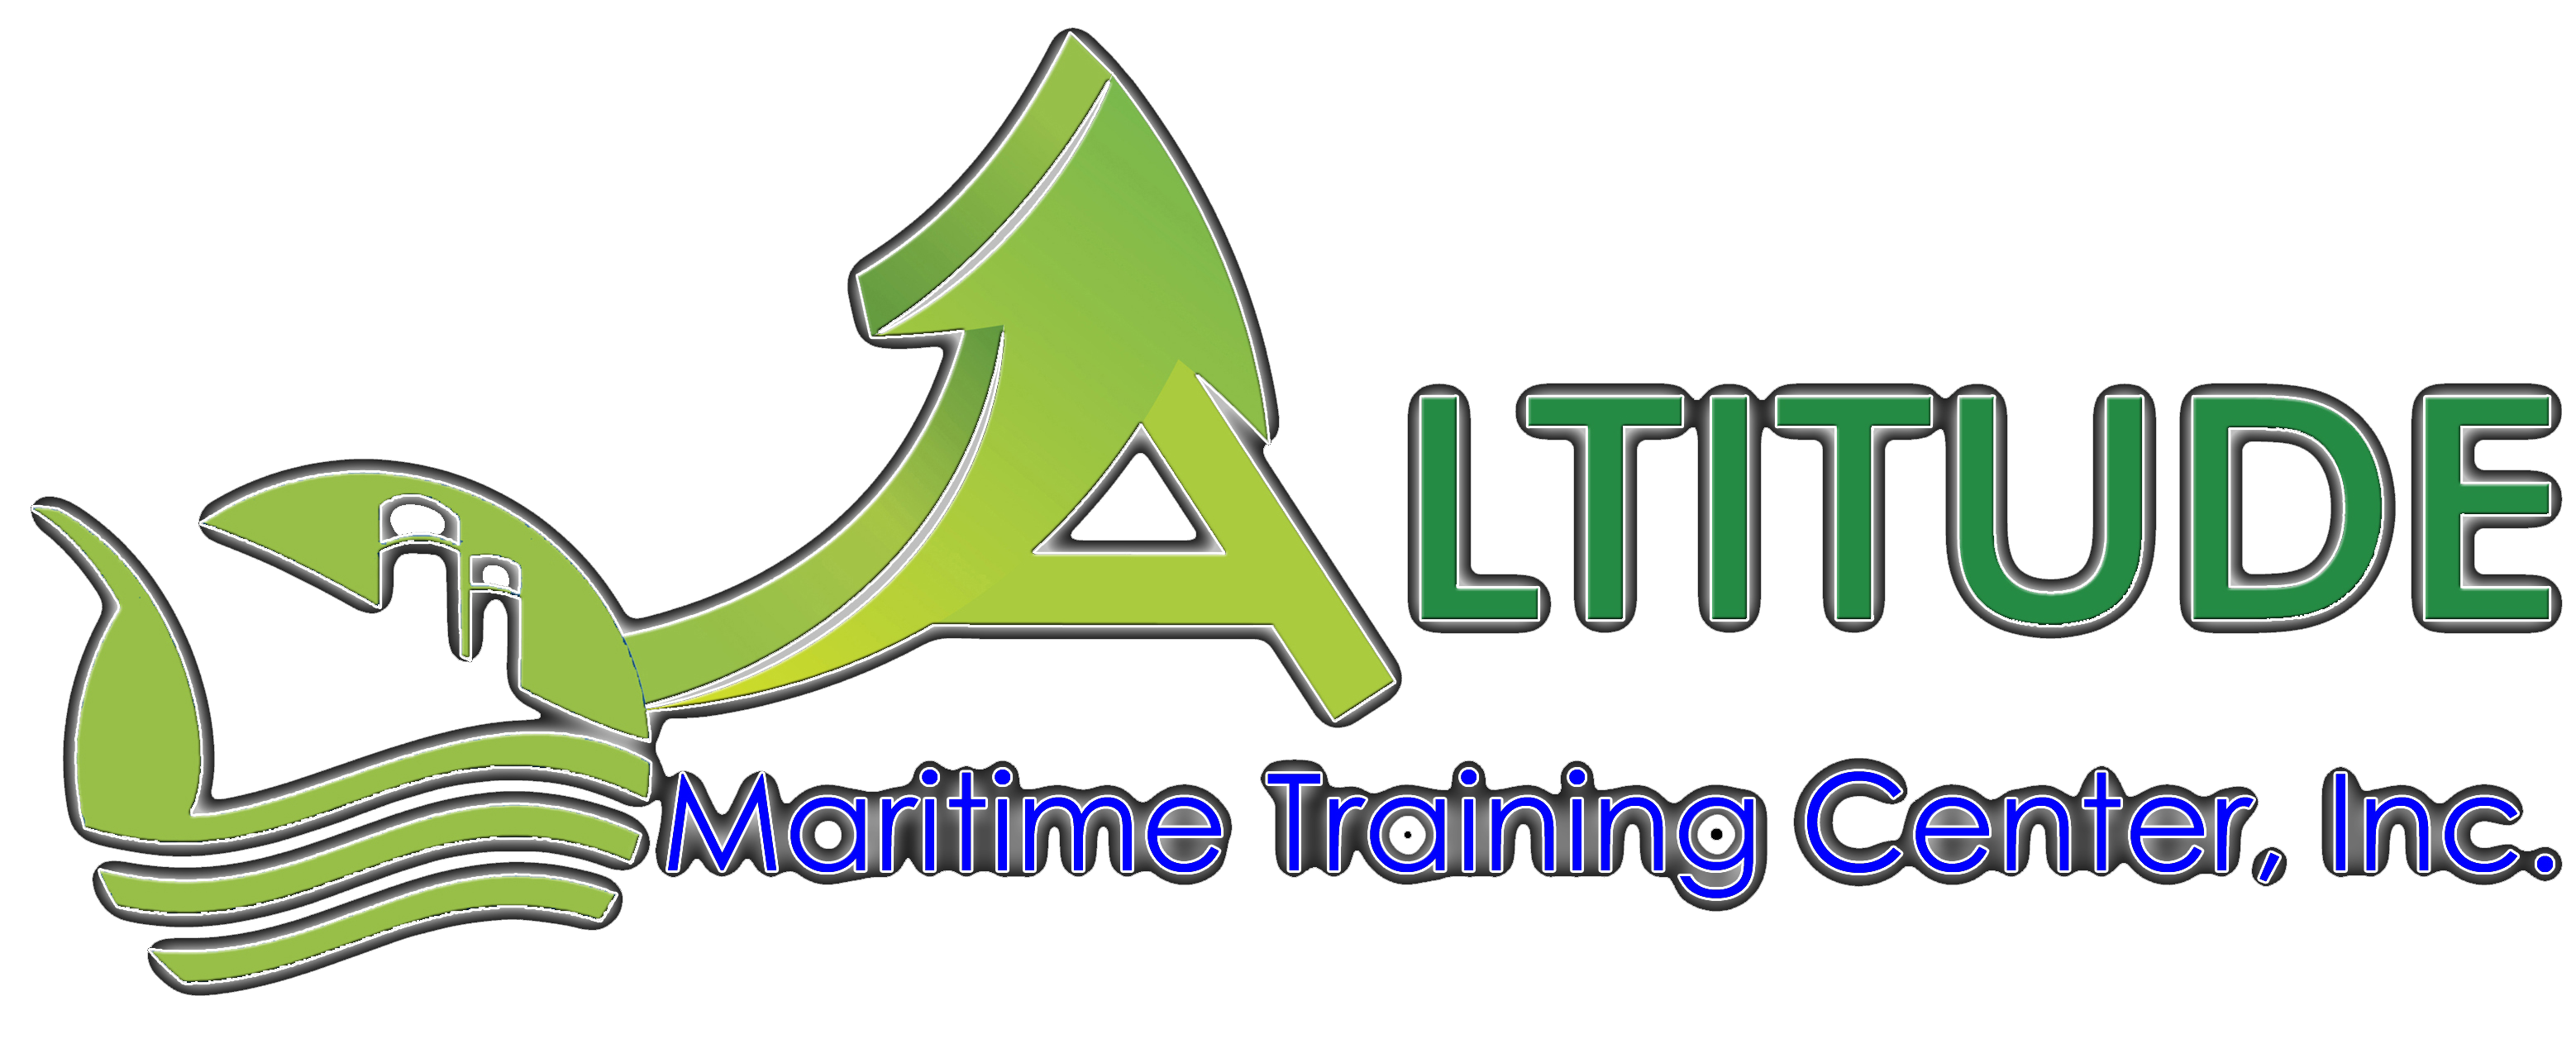 Altitude Maritime Training Center